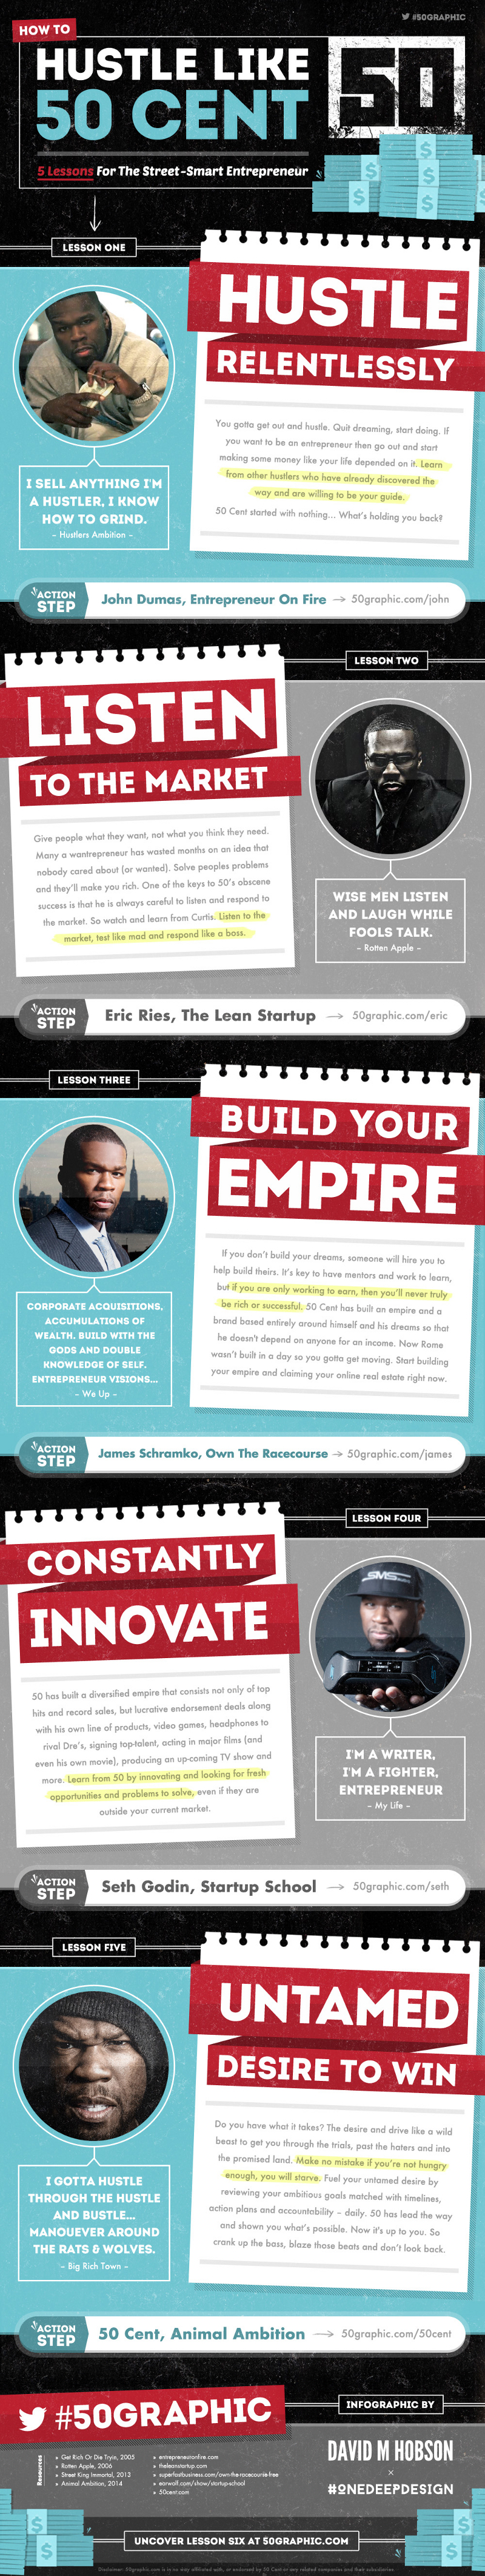 Entrepreneurial-Lessons-from-50-Cent